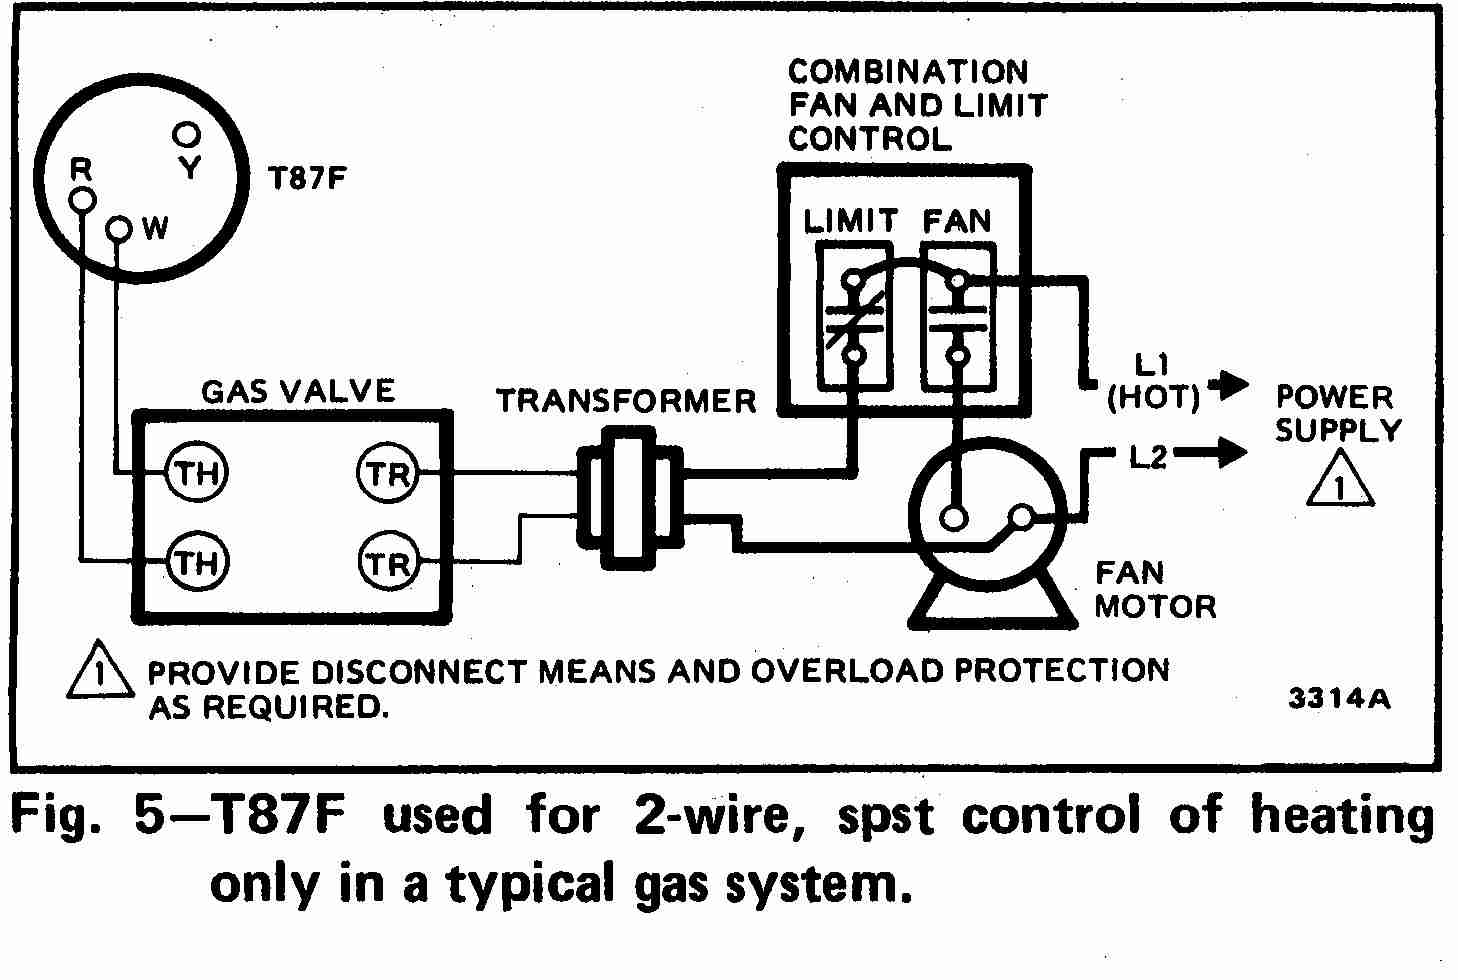 TT_T87F_0002_2Wg_DJF room thermostat wiring diagrams for hvac systems zone valve wiring diagram at virtualis.co